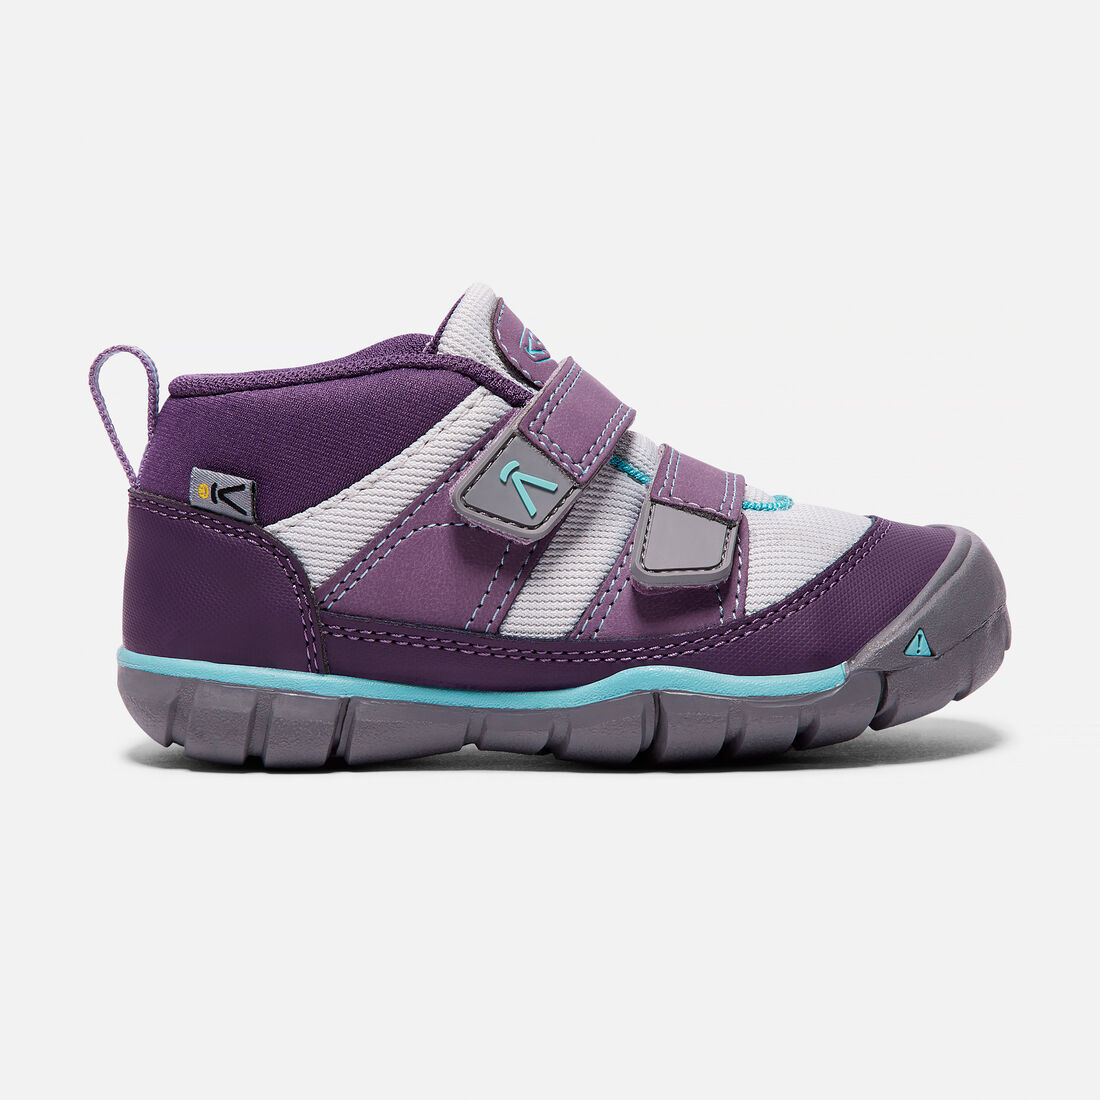 YOUNGER KIDS' PEEK-A-SHOES TRAINERS in Purple Plumeria/Sweet Lavender - large view.